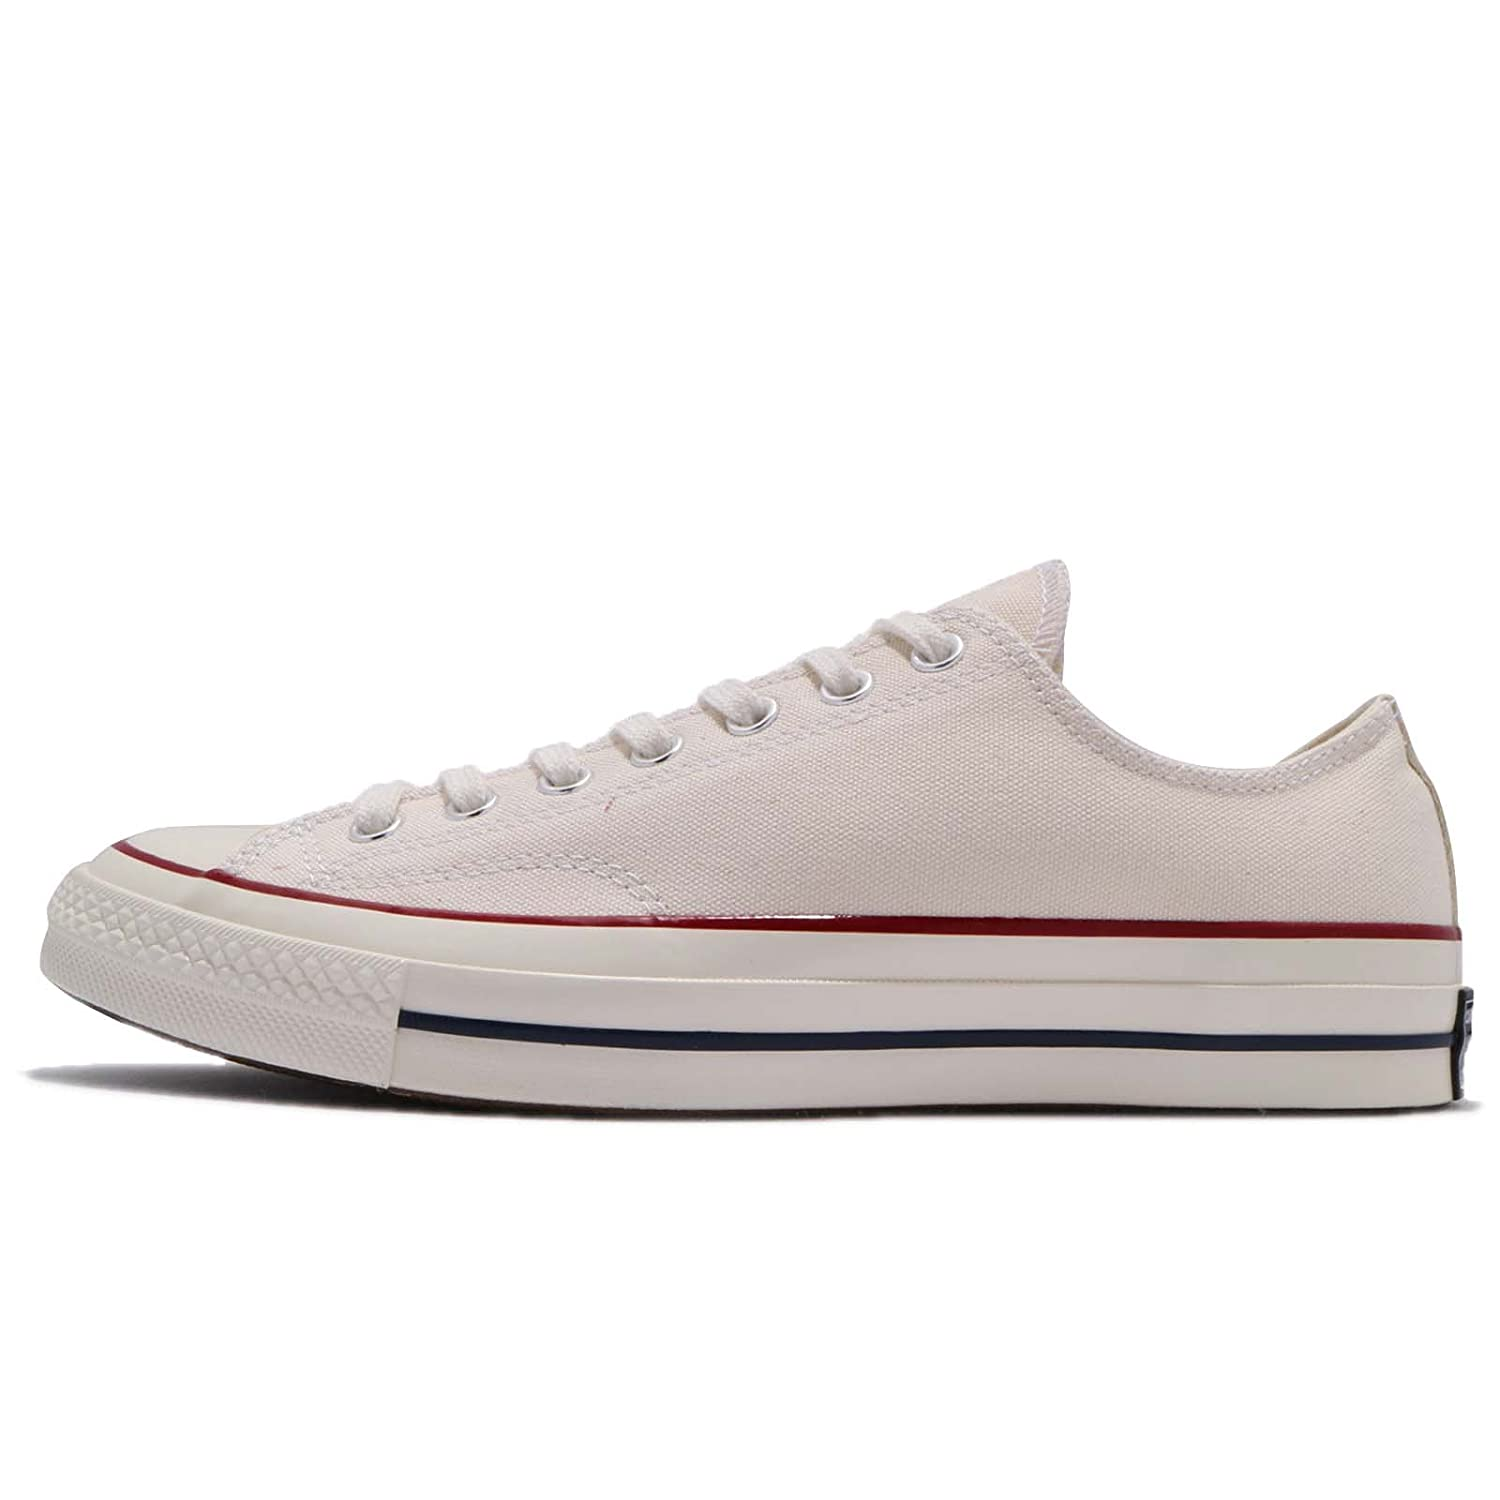 Converse Unisex Chuck Taylor All Star 70 Ox Basketball Shoe